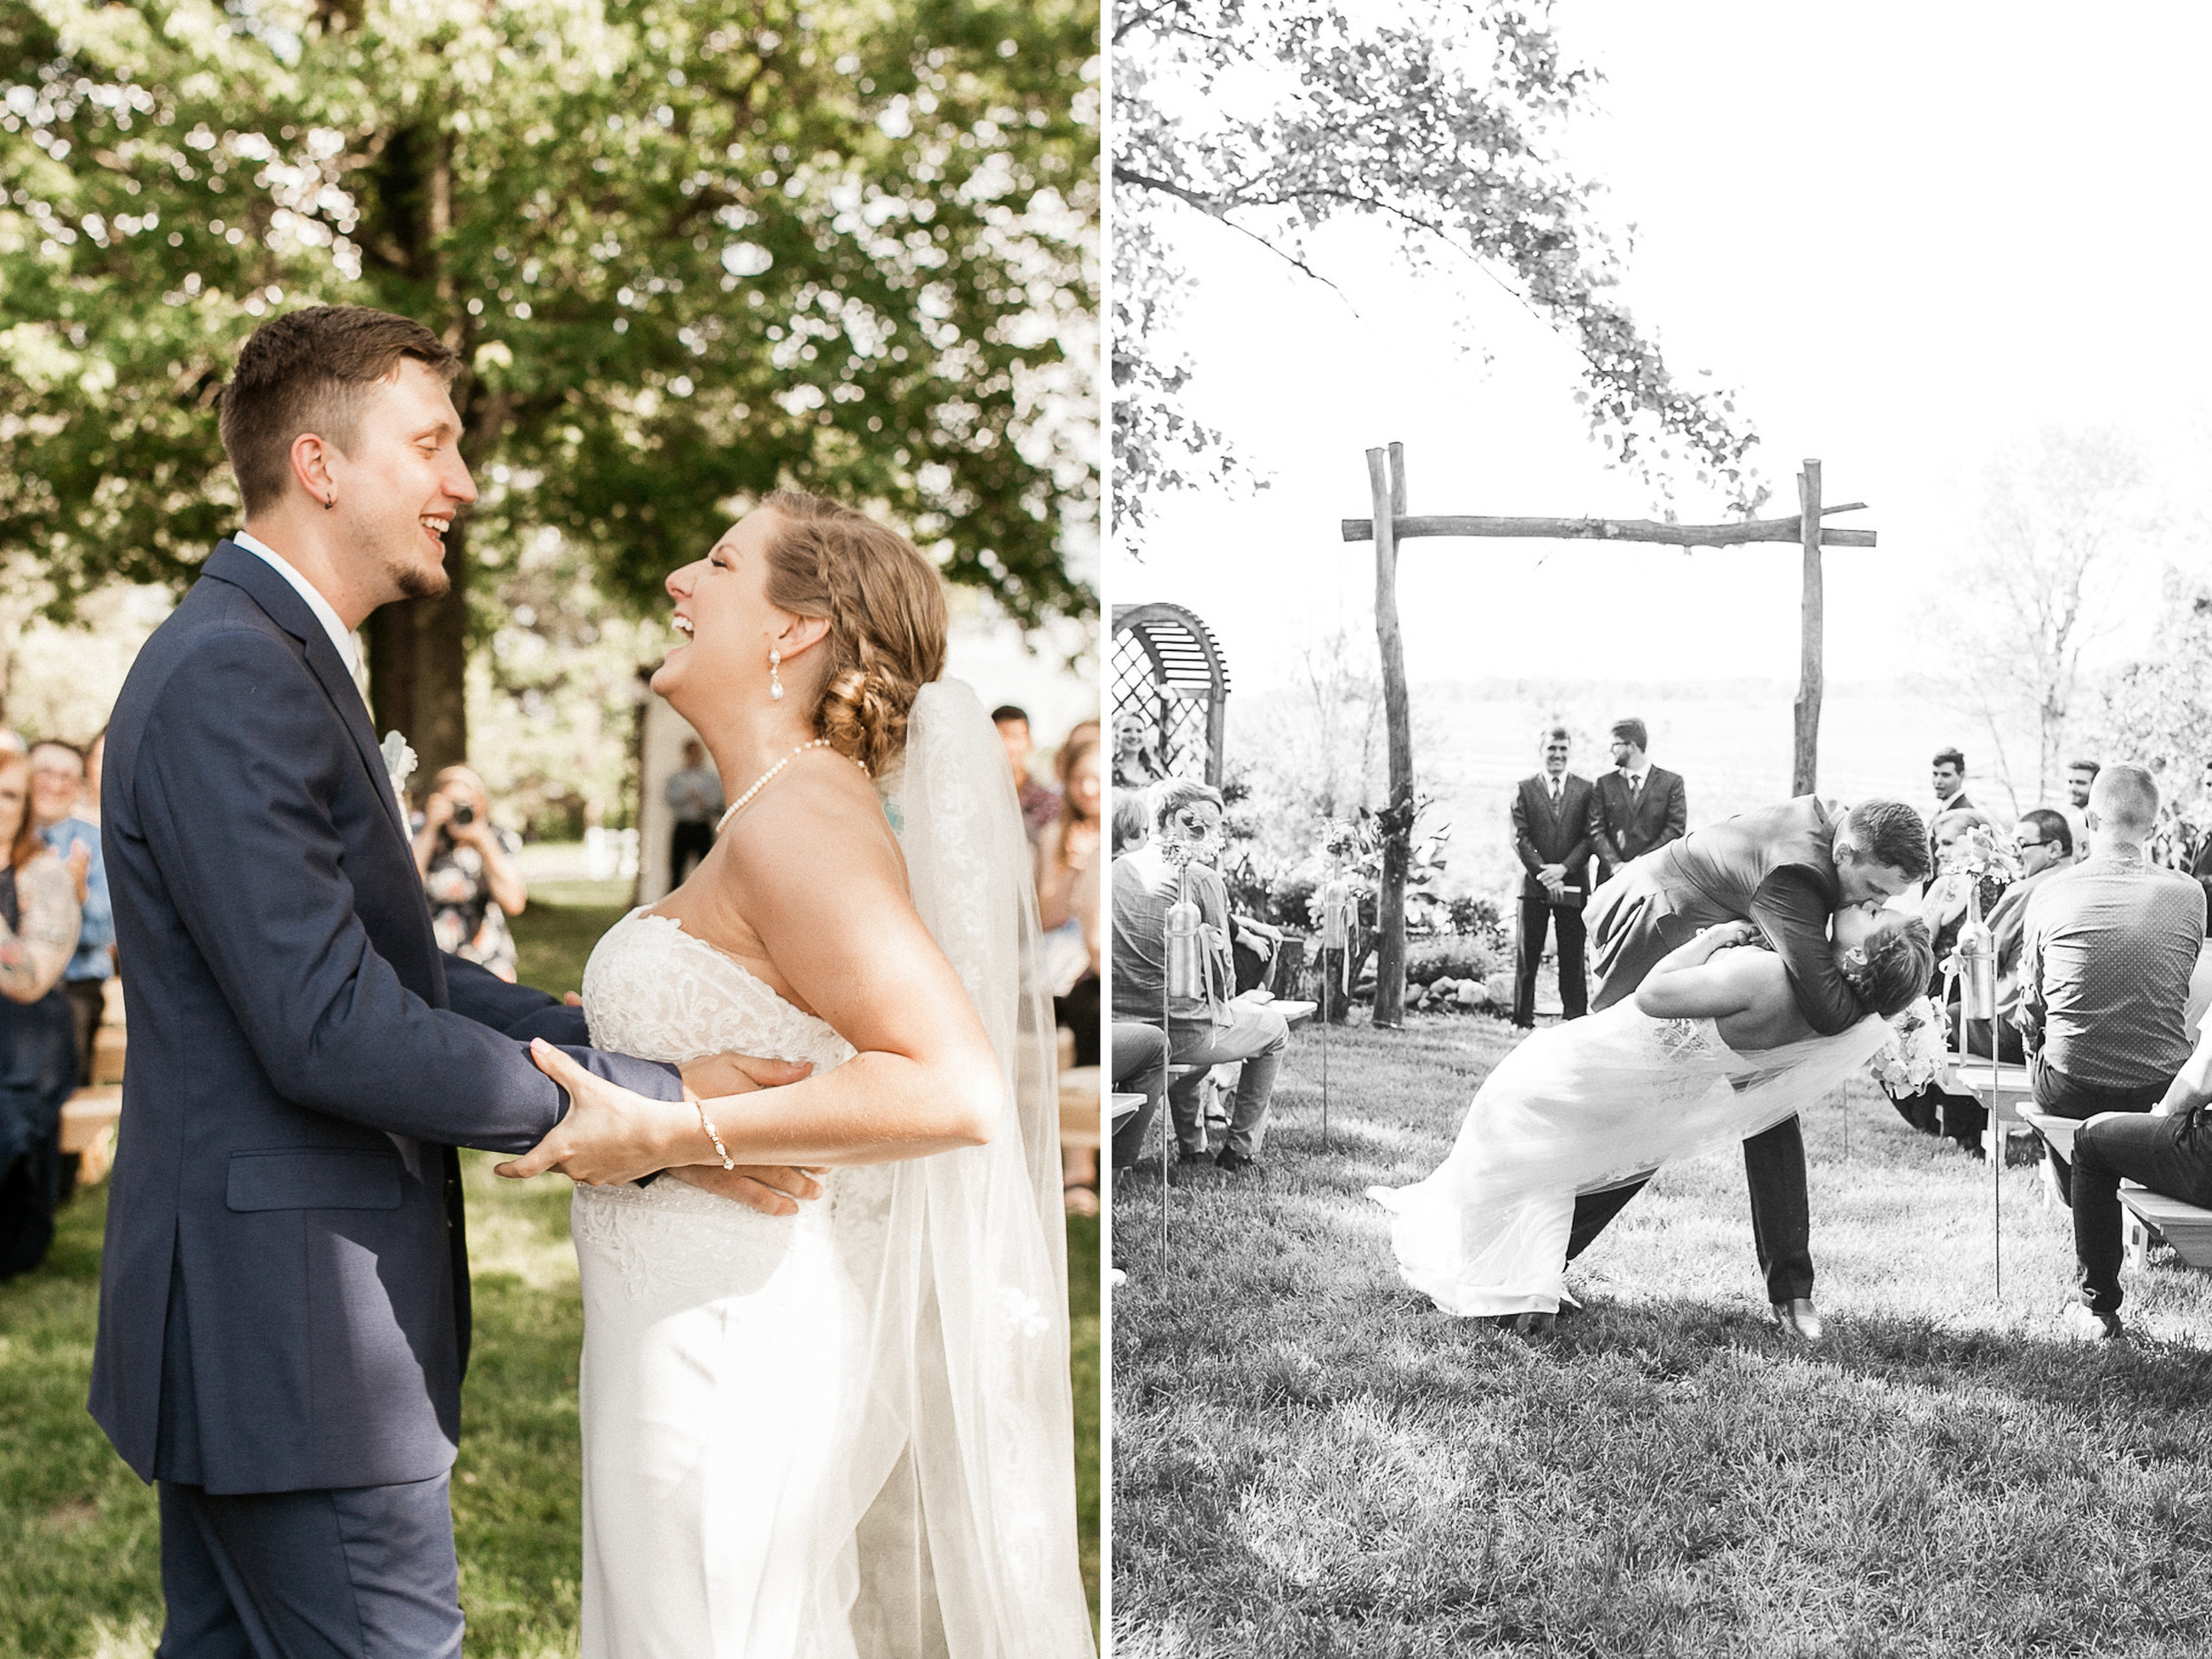 wedding-ceremony-first-kiss-picture.jpg